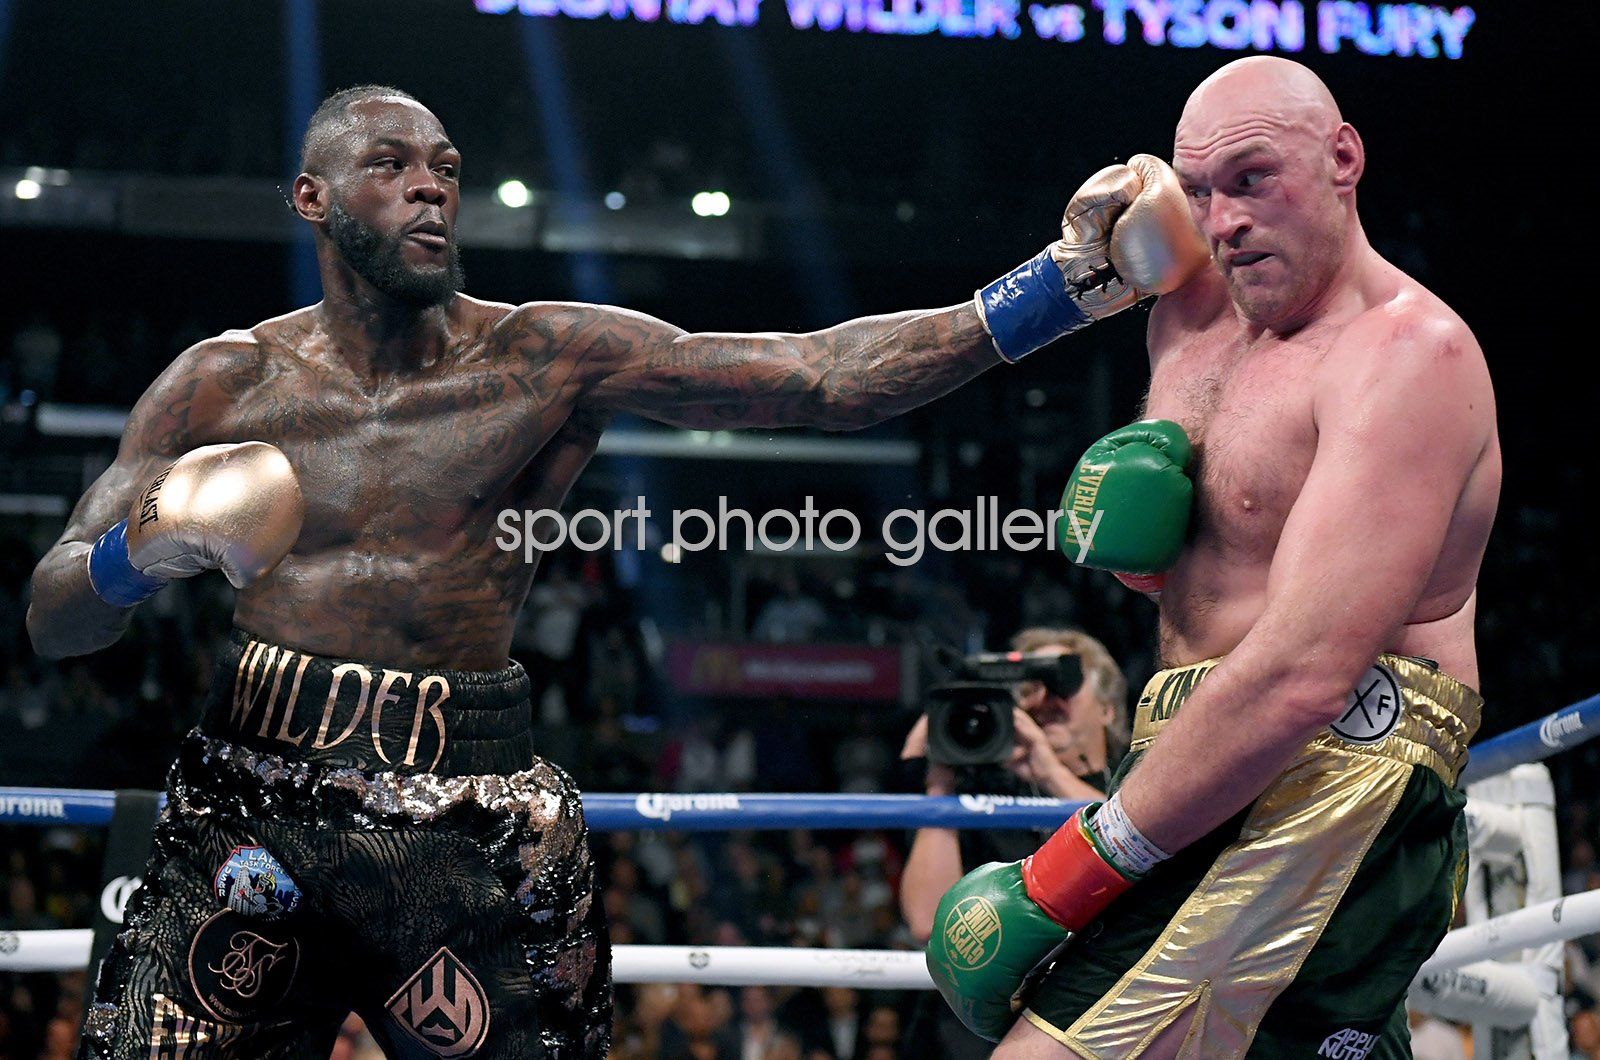 Deontay Wilder v Tyson Fury fight Los Angeles 2018